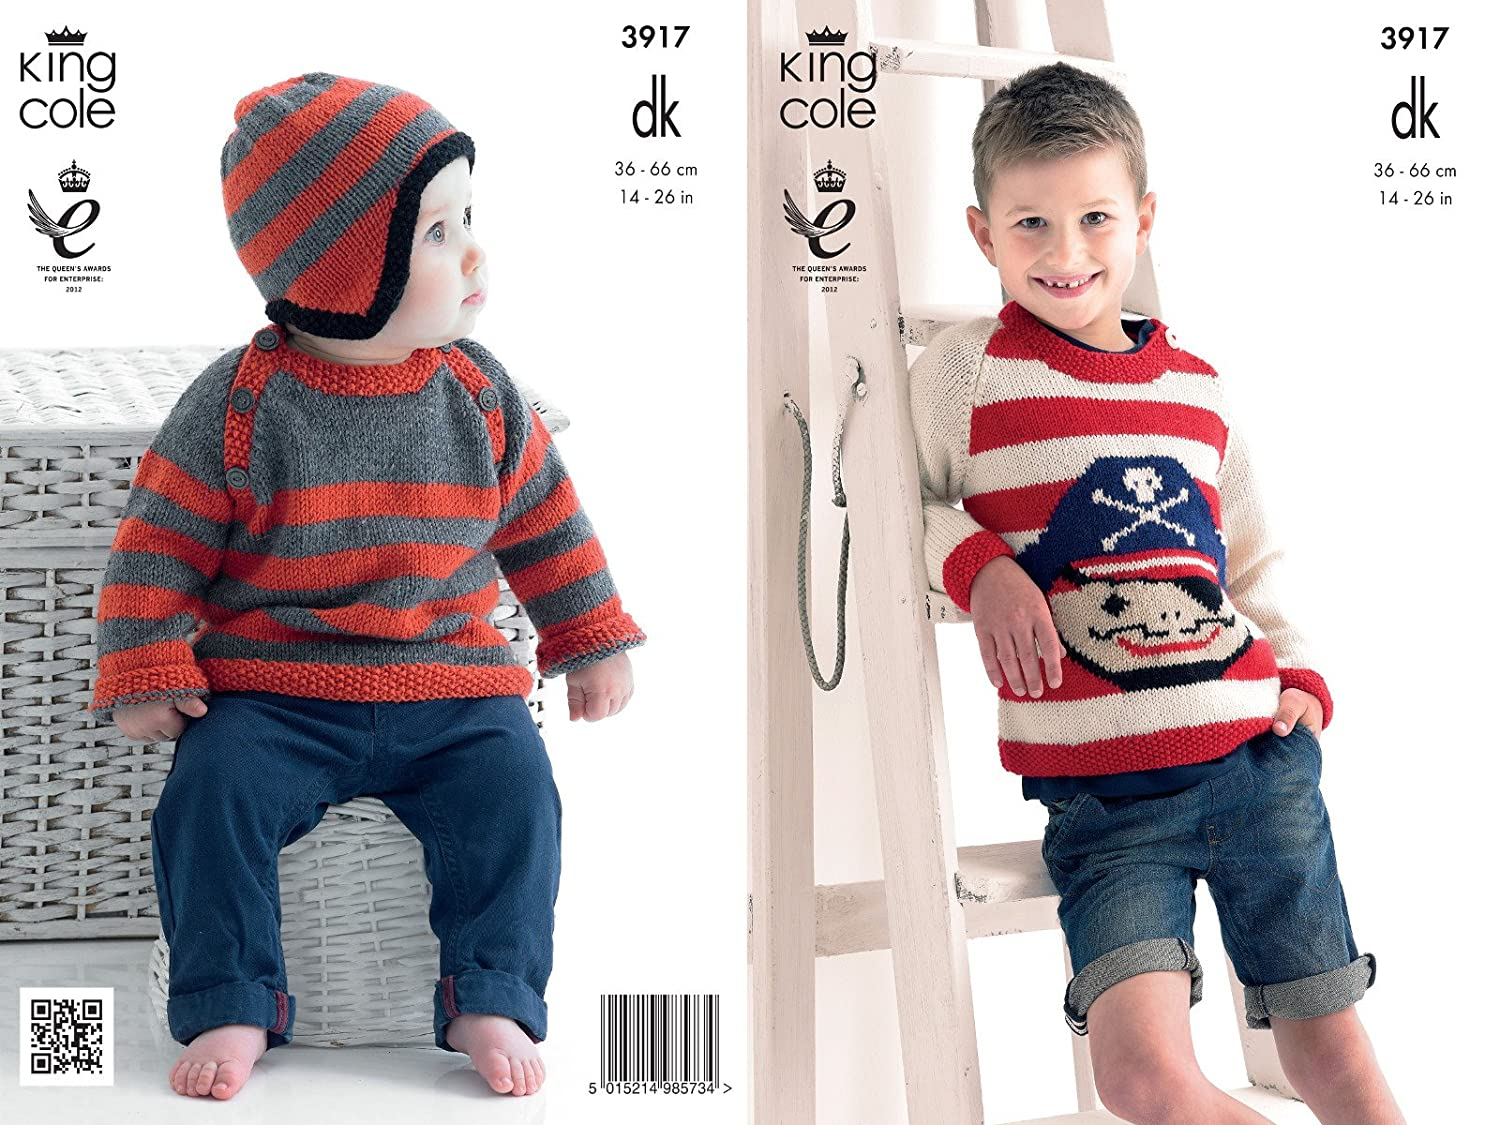 e39e638cd King Cole Boys Double Knitting DK Pattern for Long Sleeved Striped ...